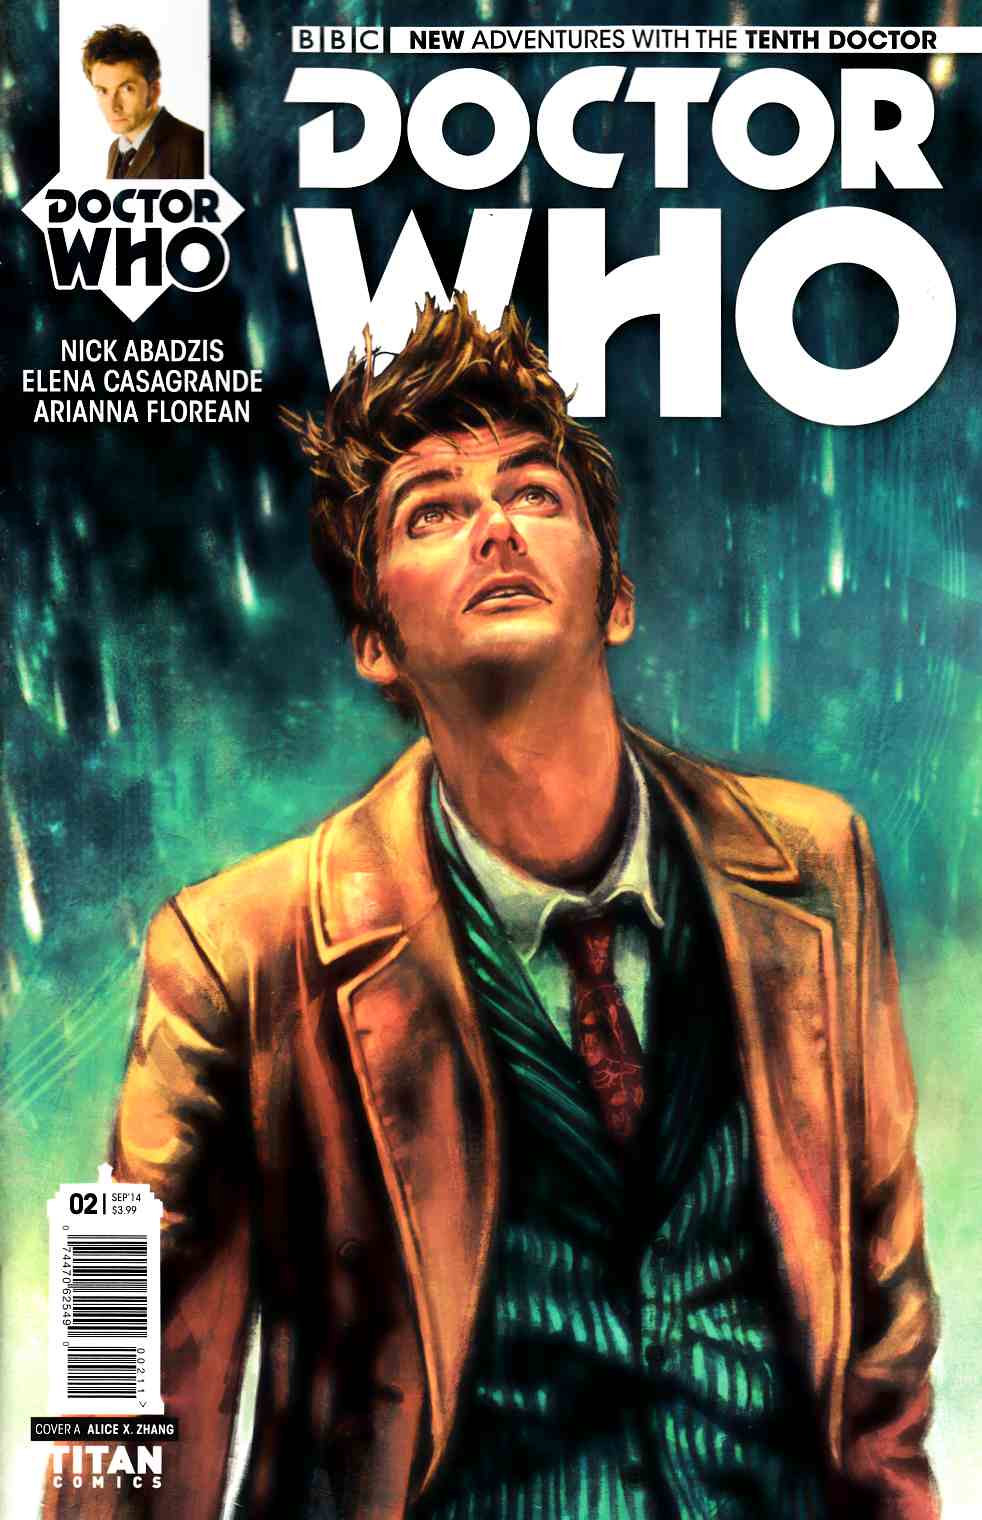 Doctor Who 10th Doctor #2 [Comic]